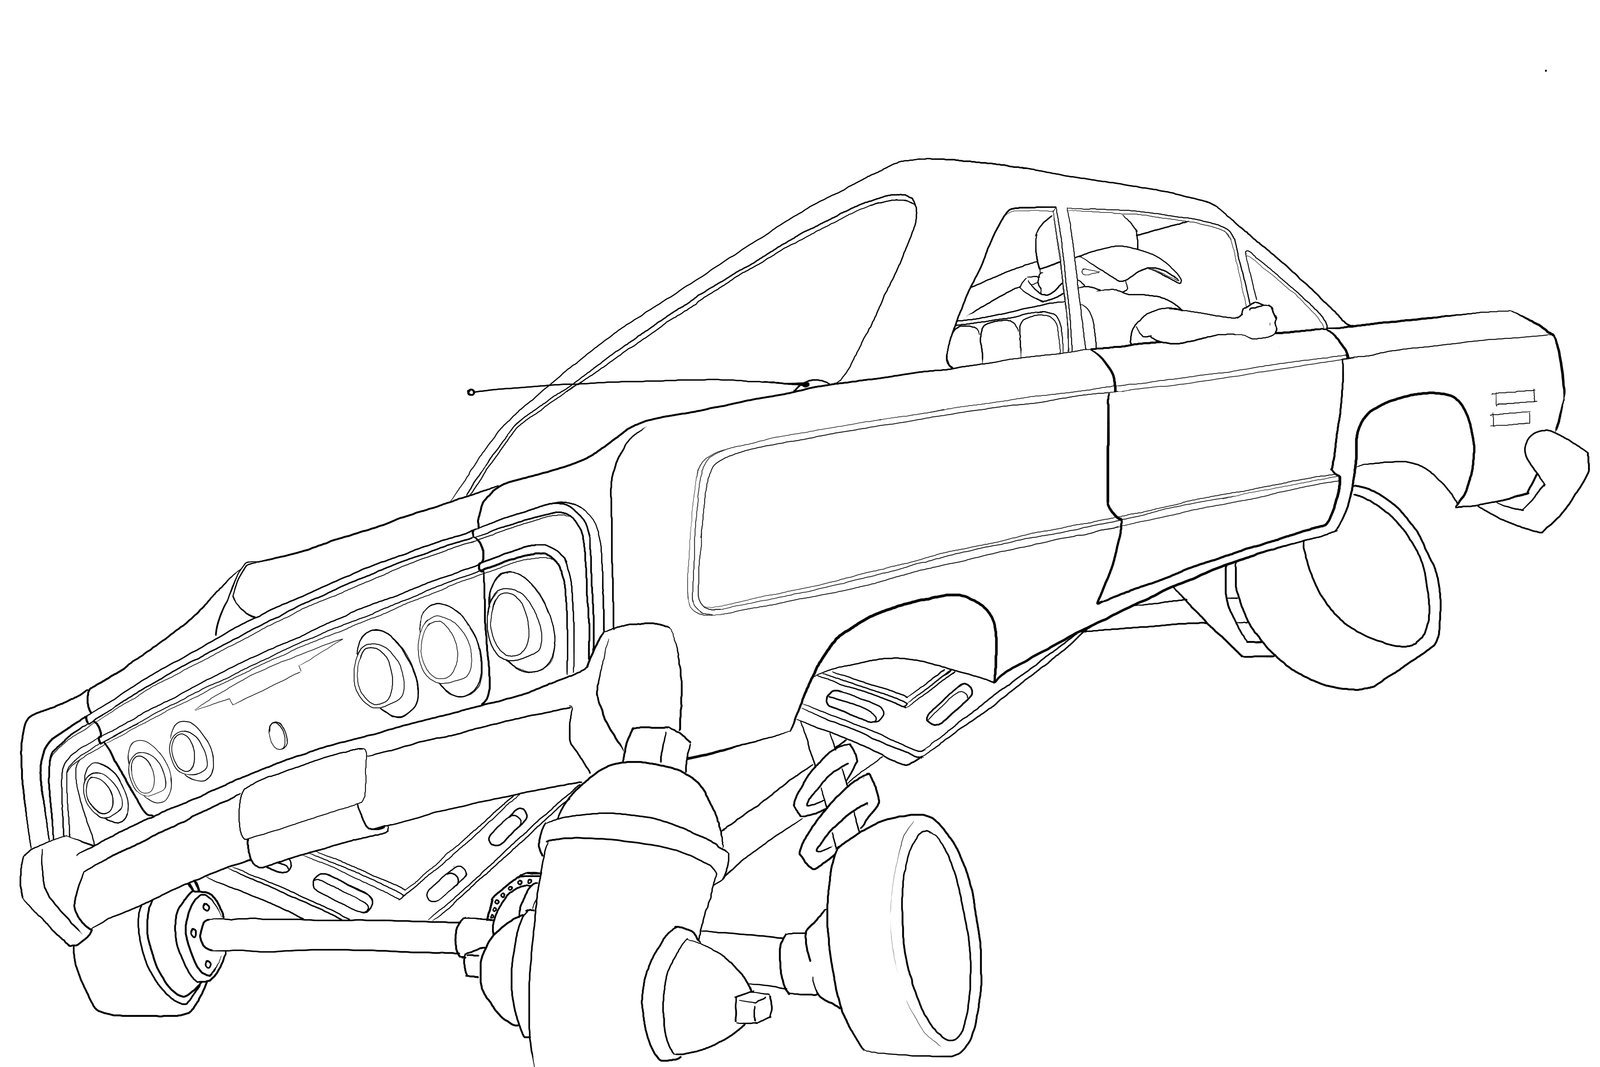 64 Impala Drawing At Getdrawings